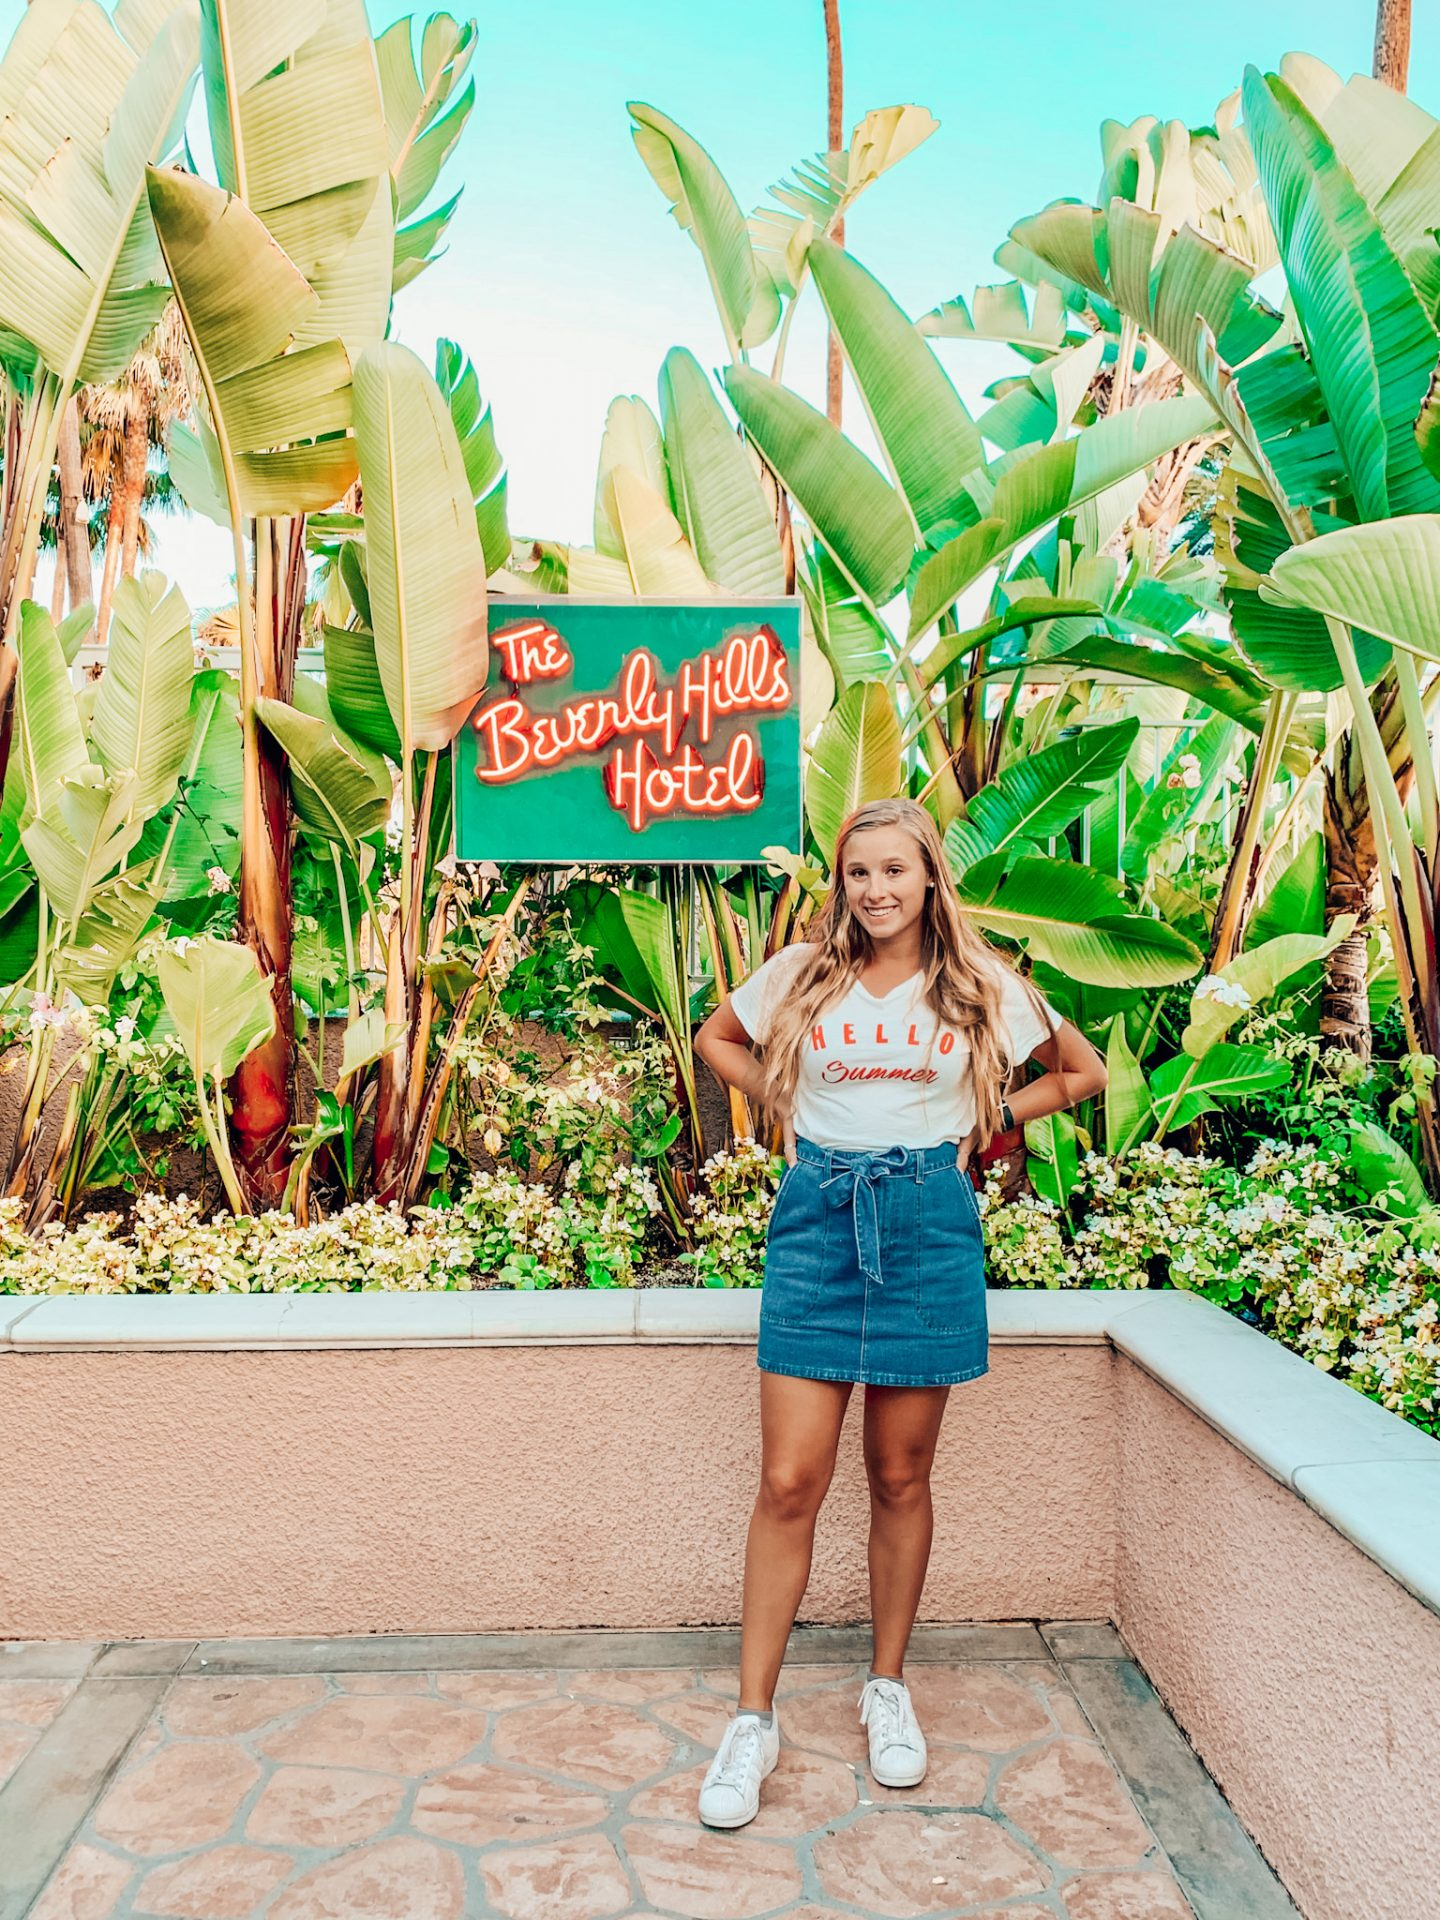 Private tour of the Beverly Hills hotel gardens!